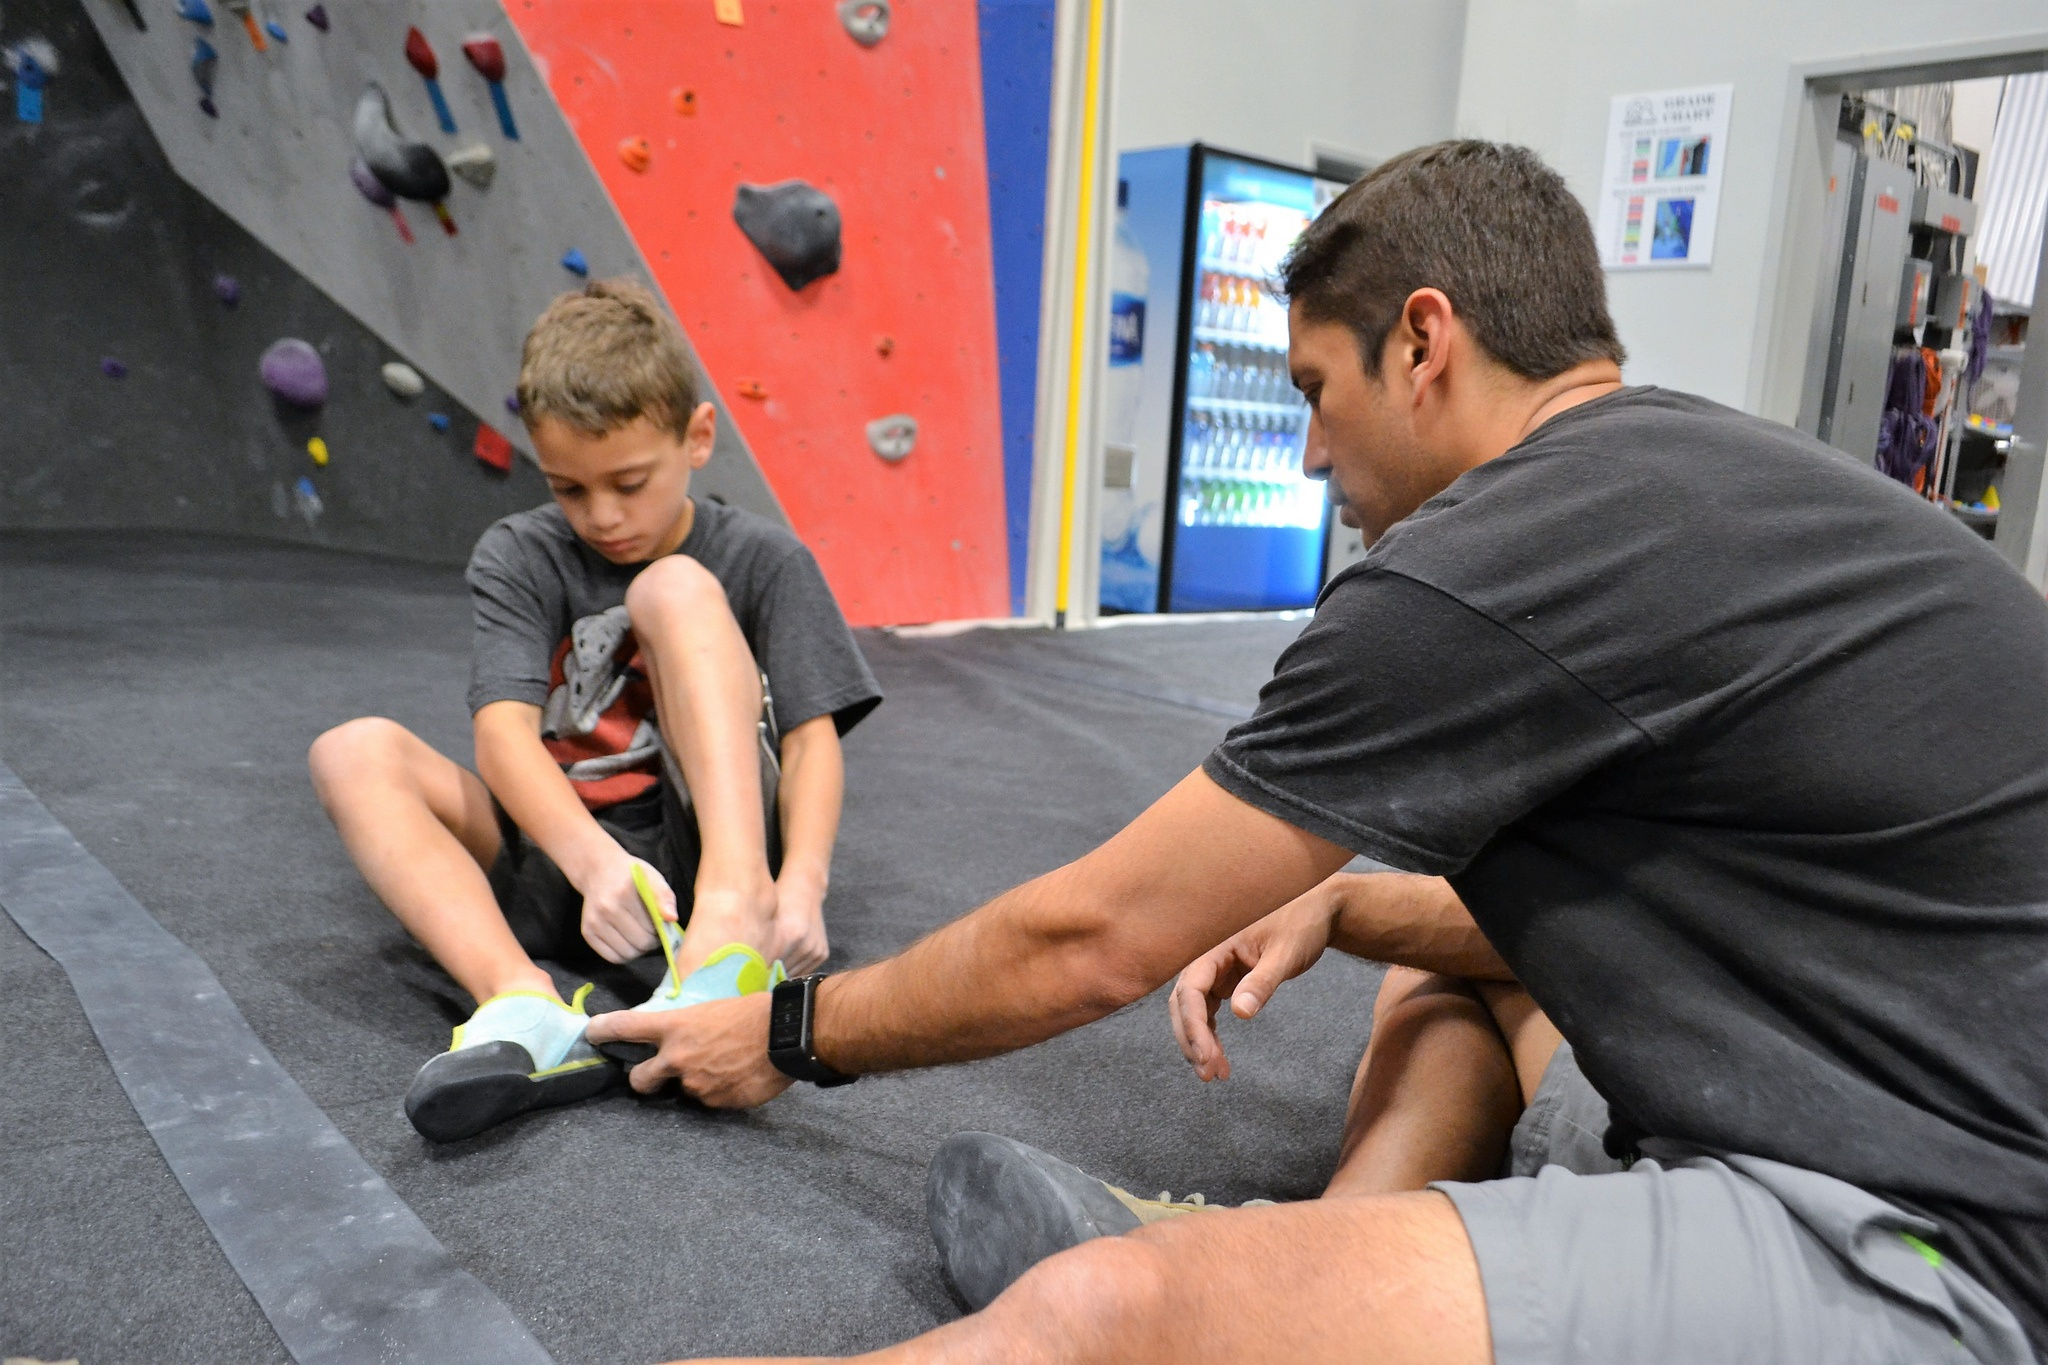 Kids Climbing Shoes - What to Look for!